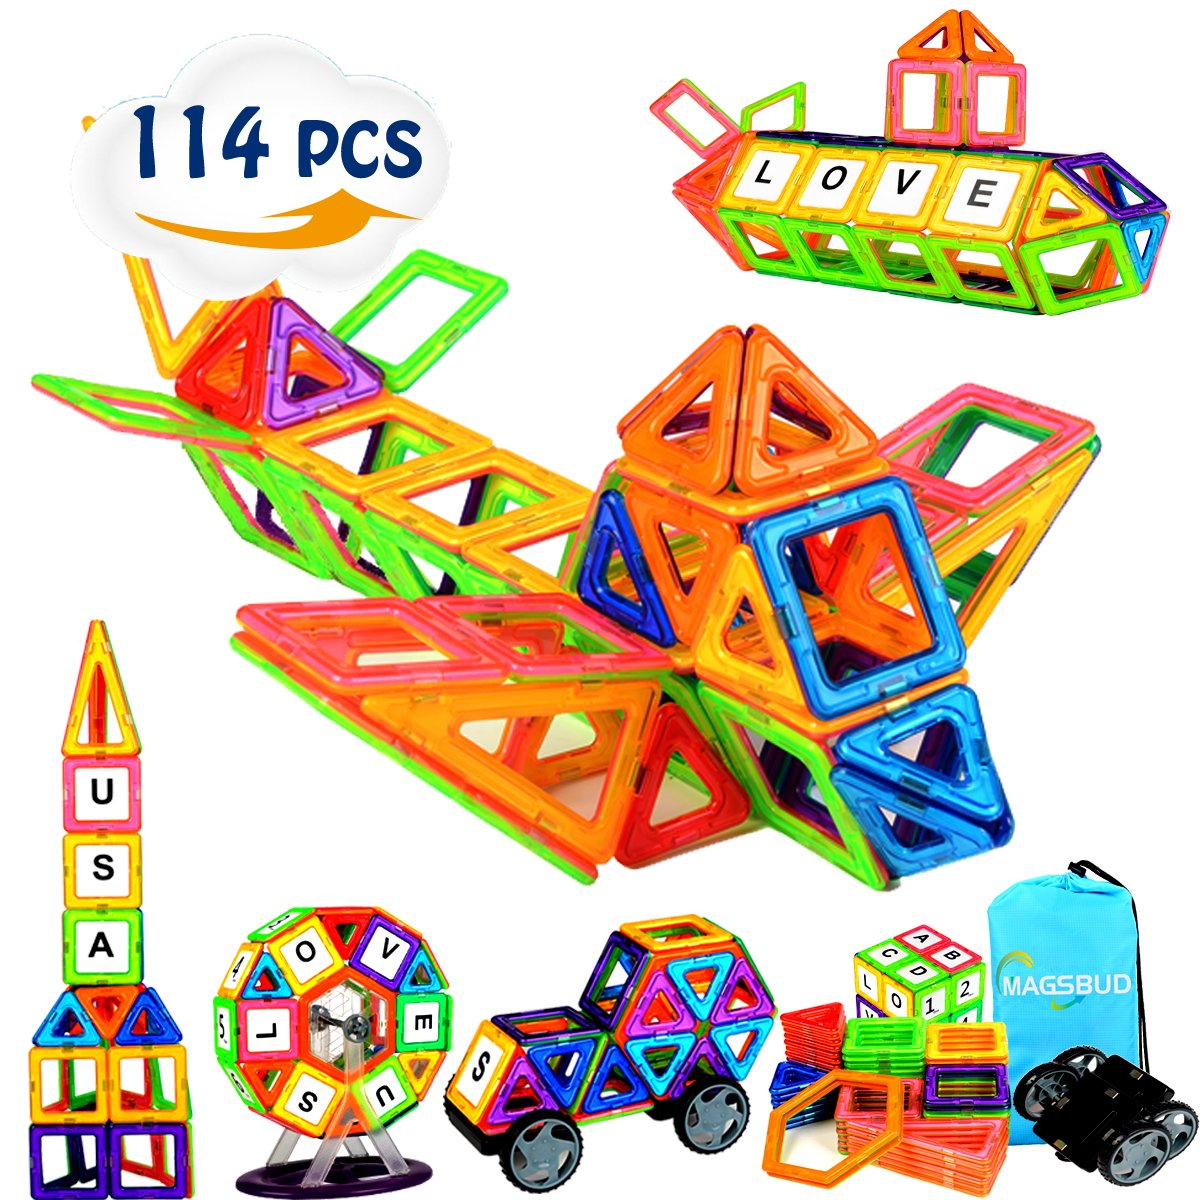 Magsbud Magnetic Blocks, 114 Pieces Colorful Magnetic Building Blocks for Kids, Educational Magnetic Construction Tiles Sets for Boys and Girls Review